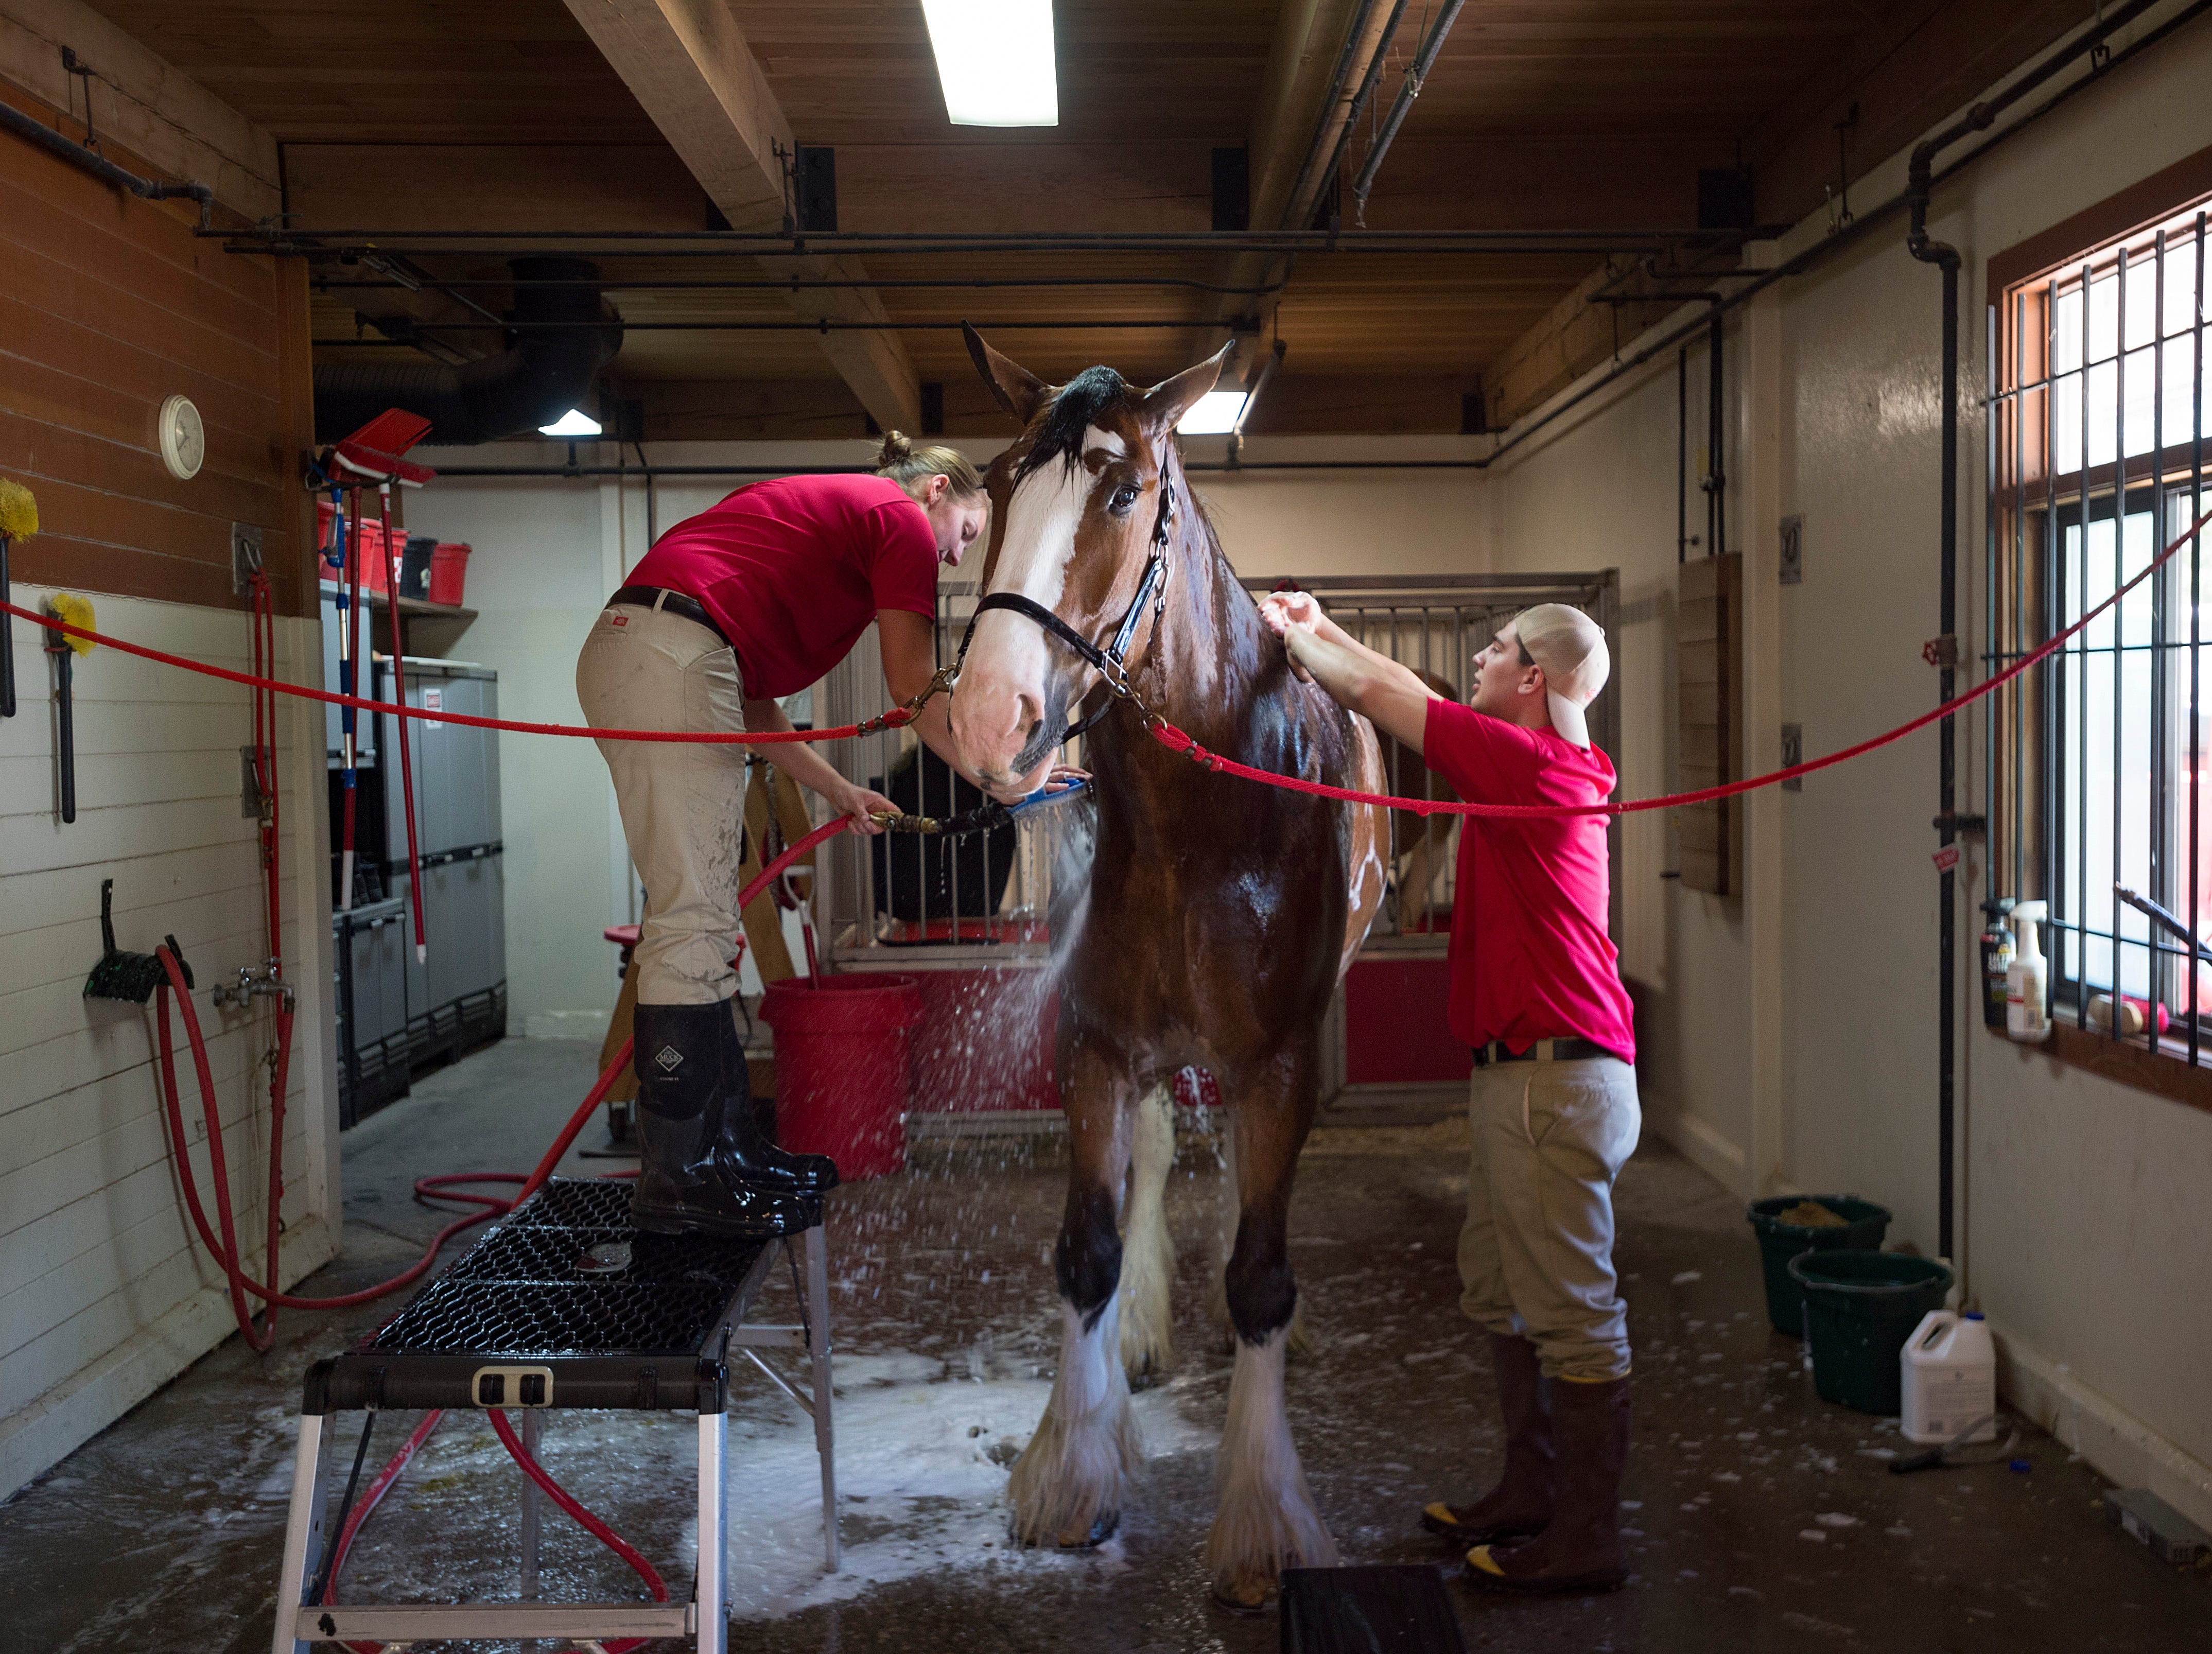 Shelby Zarobinski and Andrew Lacrosse give Red, a 2,200-pound Clydesdale, a bath at the Fort Collins Anheuser-Busch Brewery on Thursday, May 31, 2018. The iconic Budweiser Clydesdales are visiting the brewery's Fort Collins location this week.